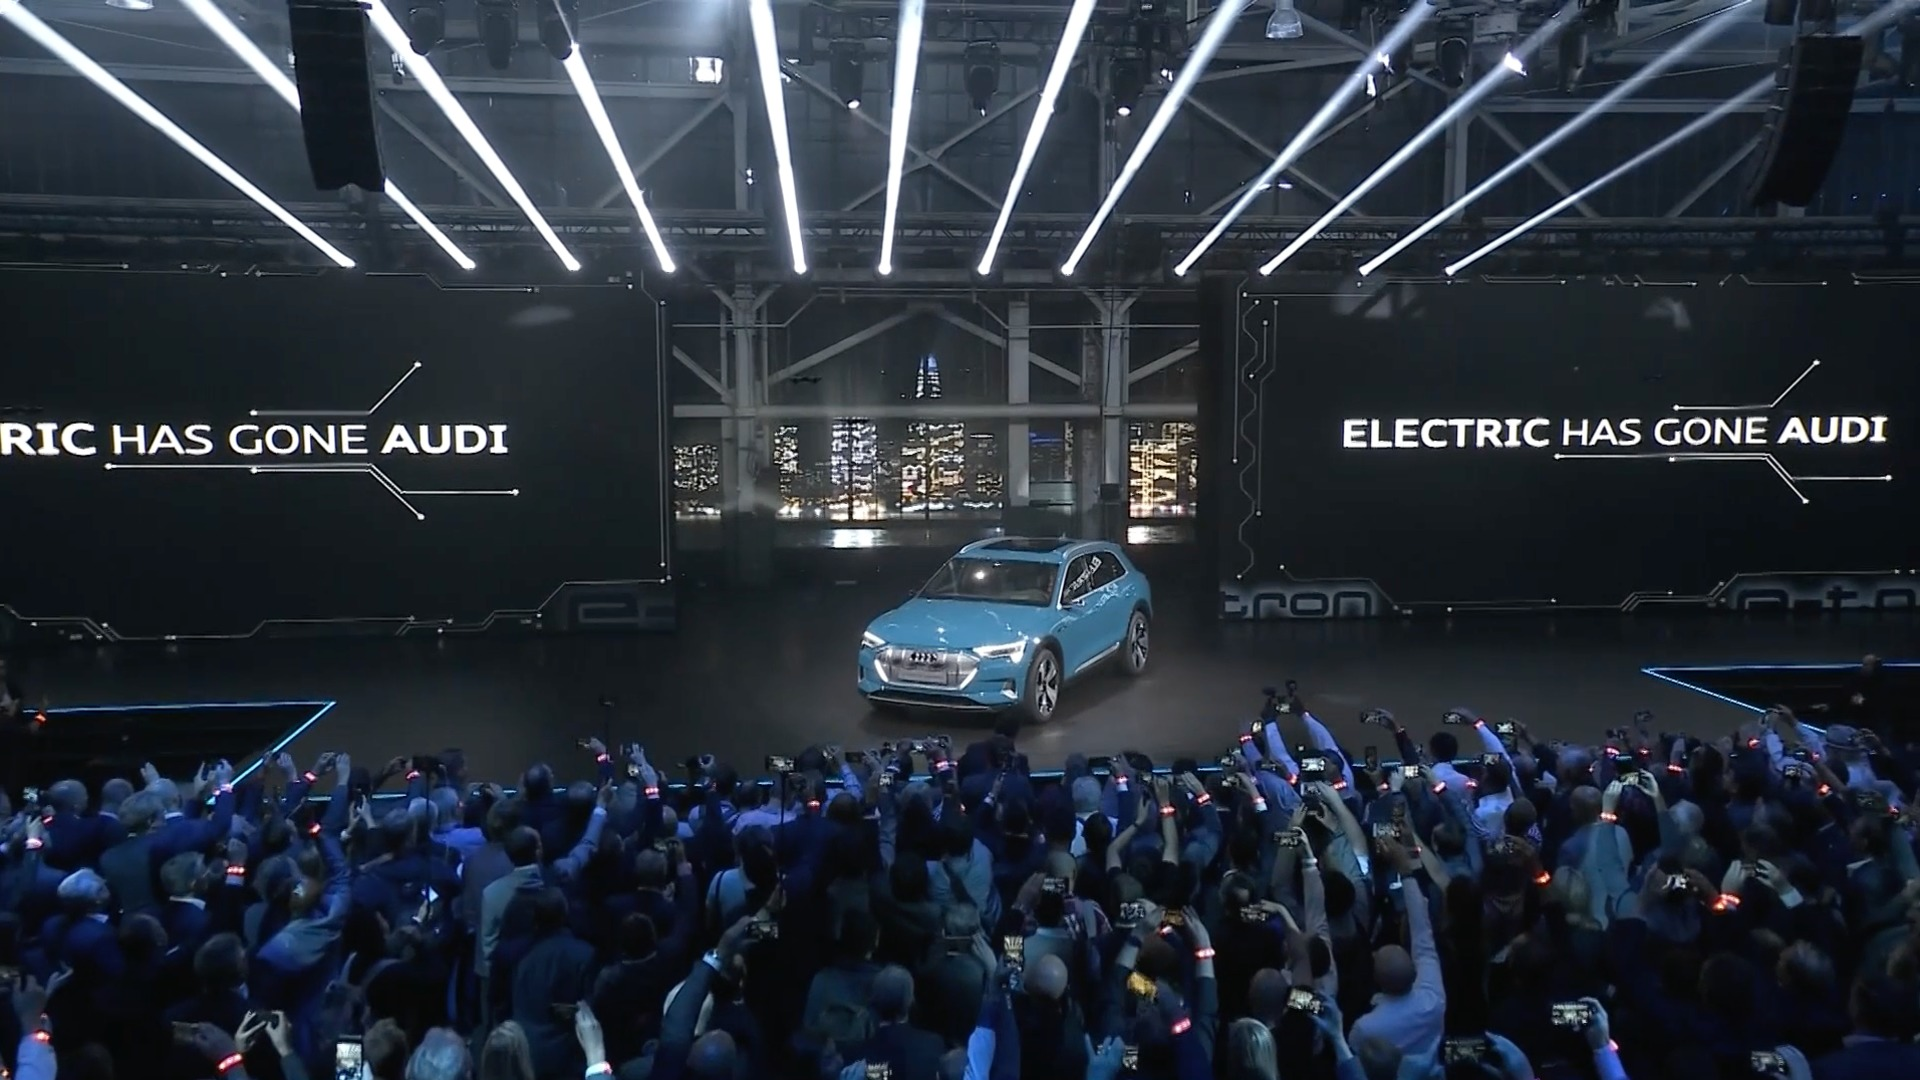 World premiere of the Audi e-tron: highlights